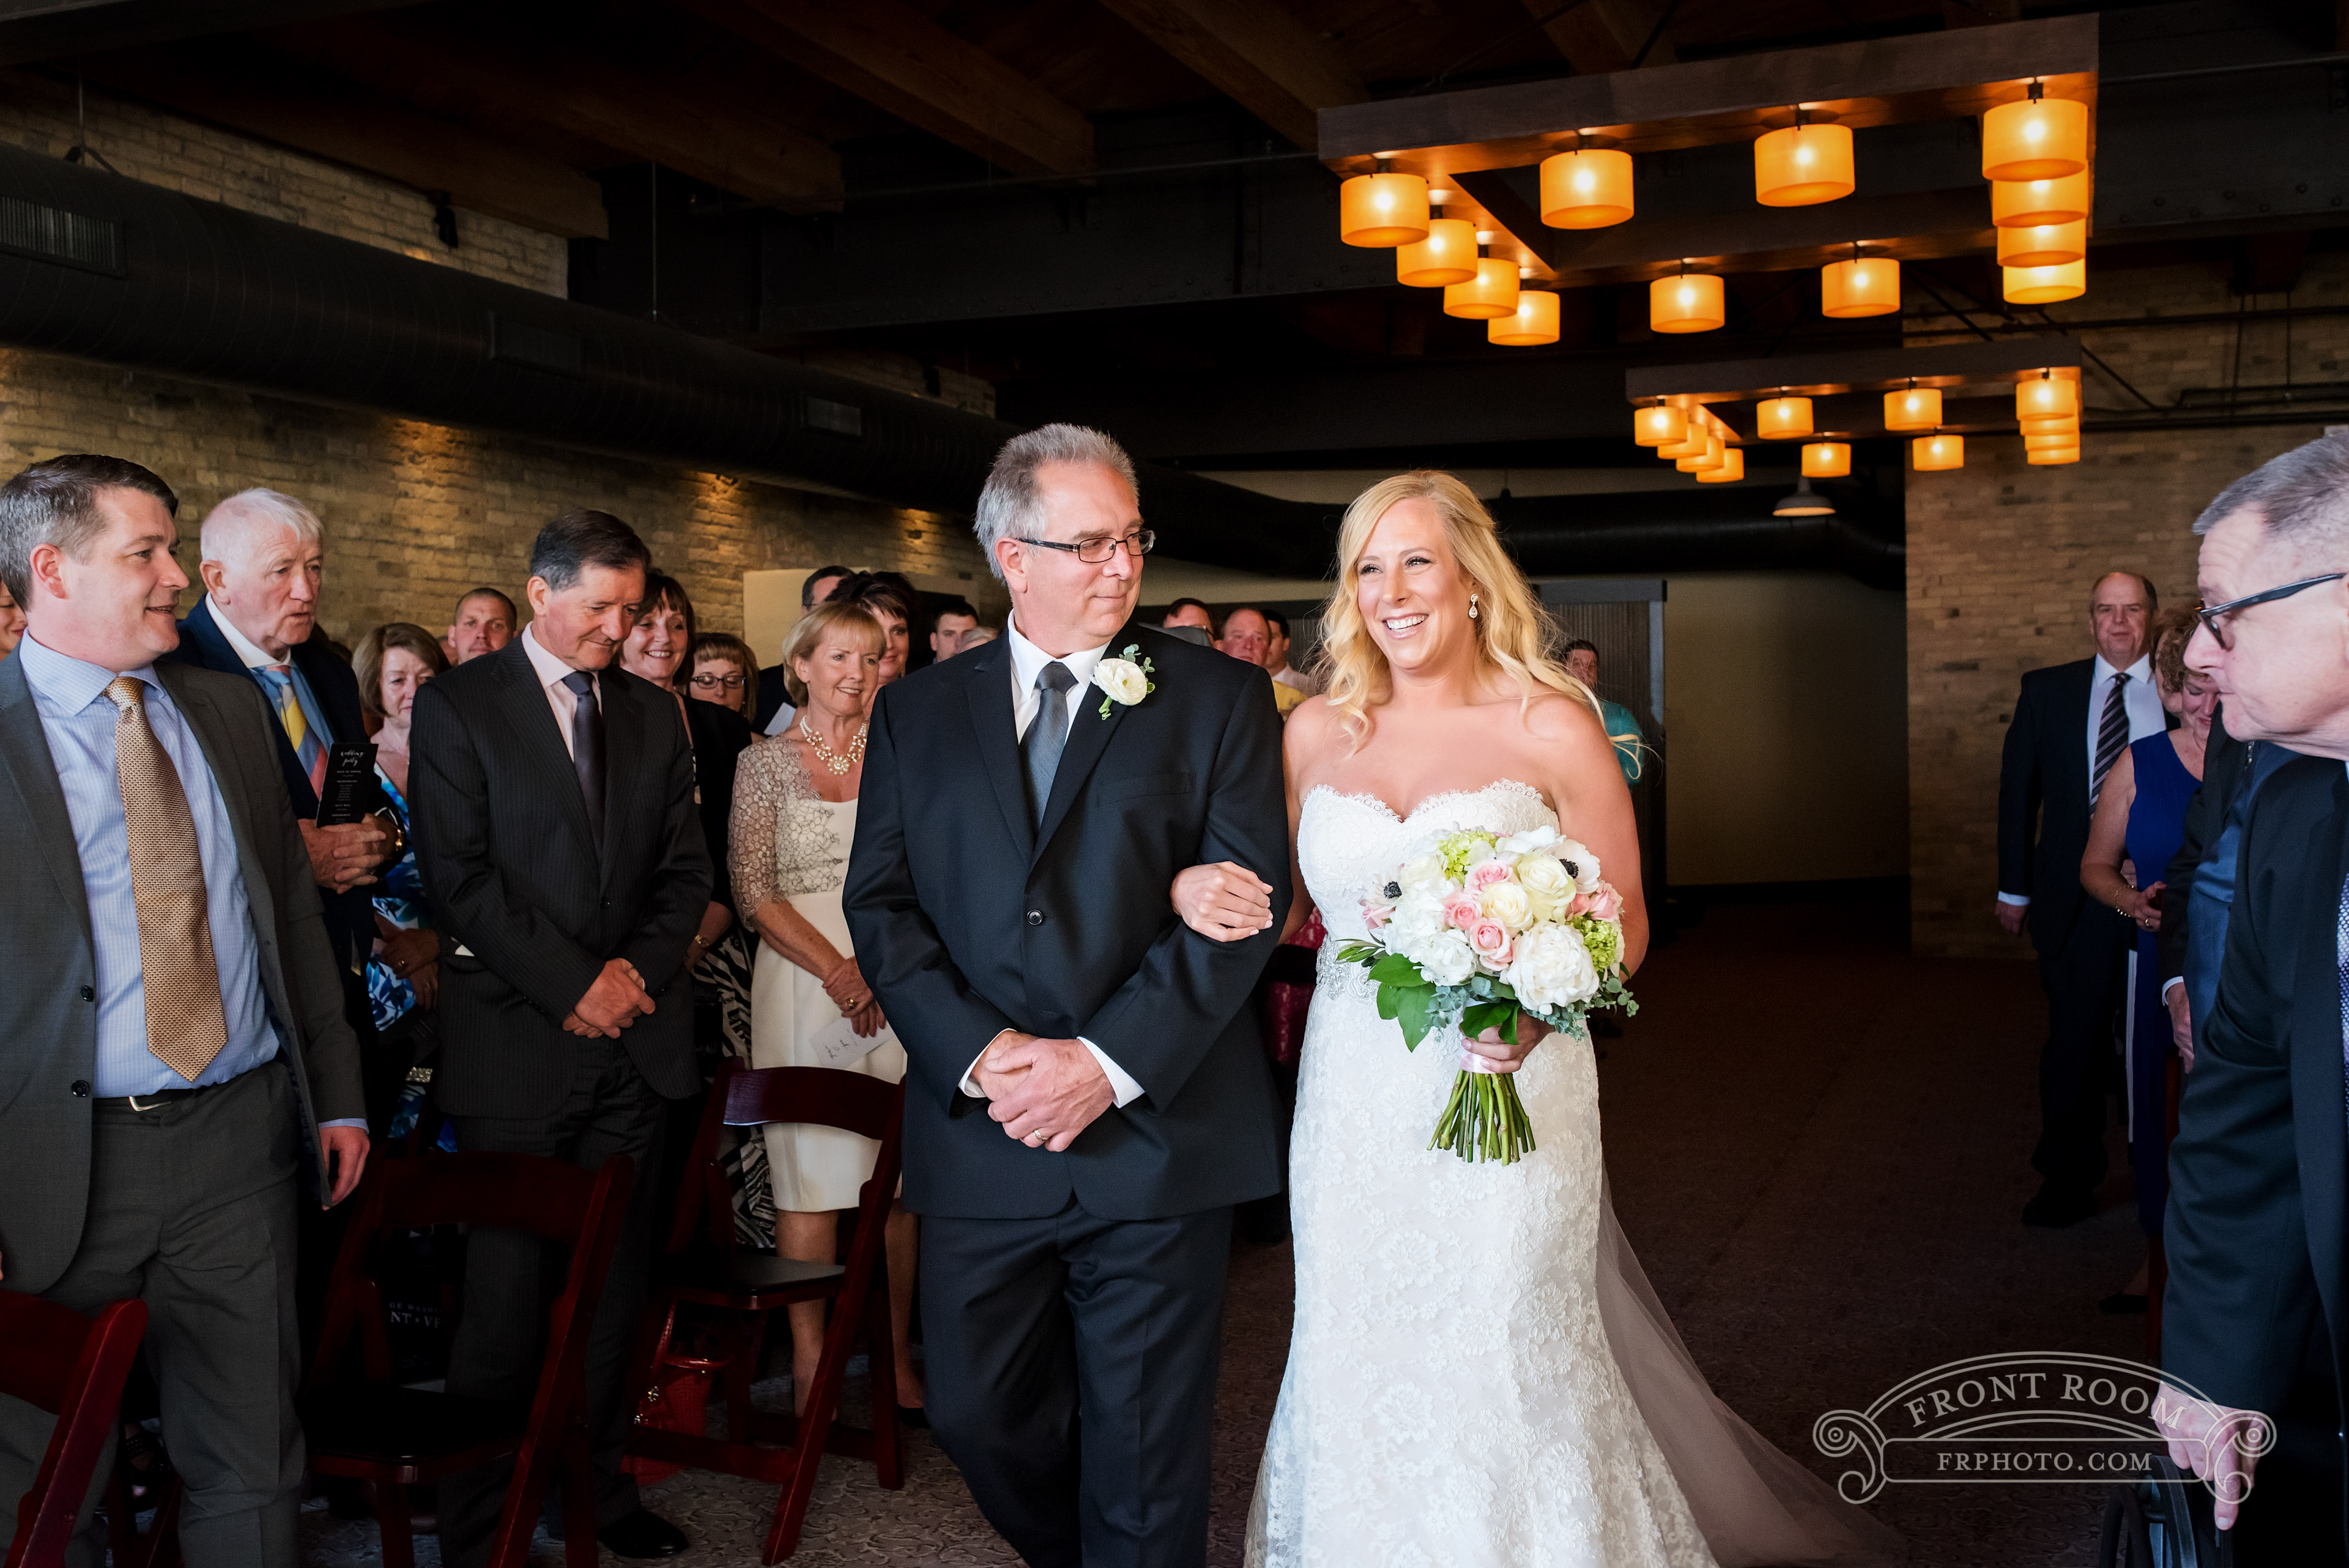 Pritzlaff_Wedding_FRPhoto_160521A_W_467_blog